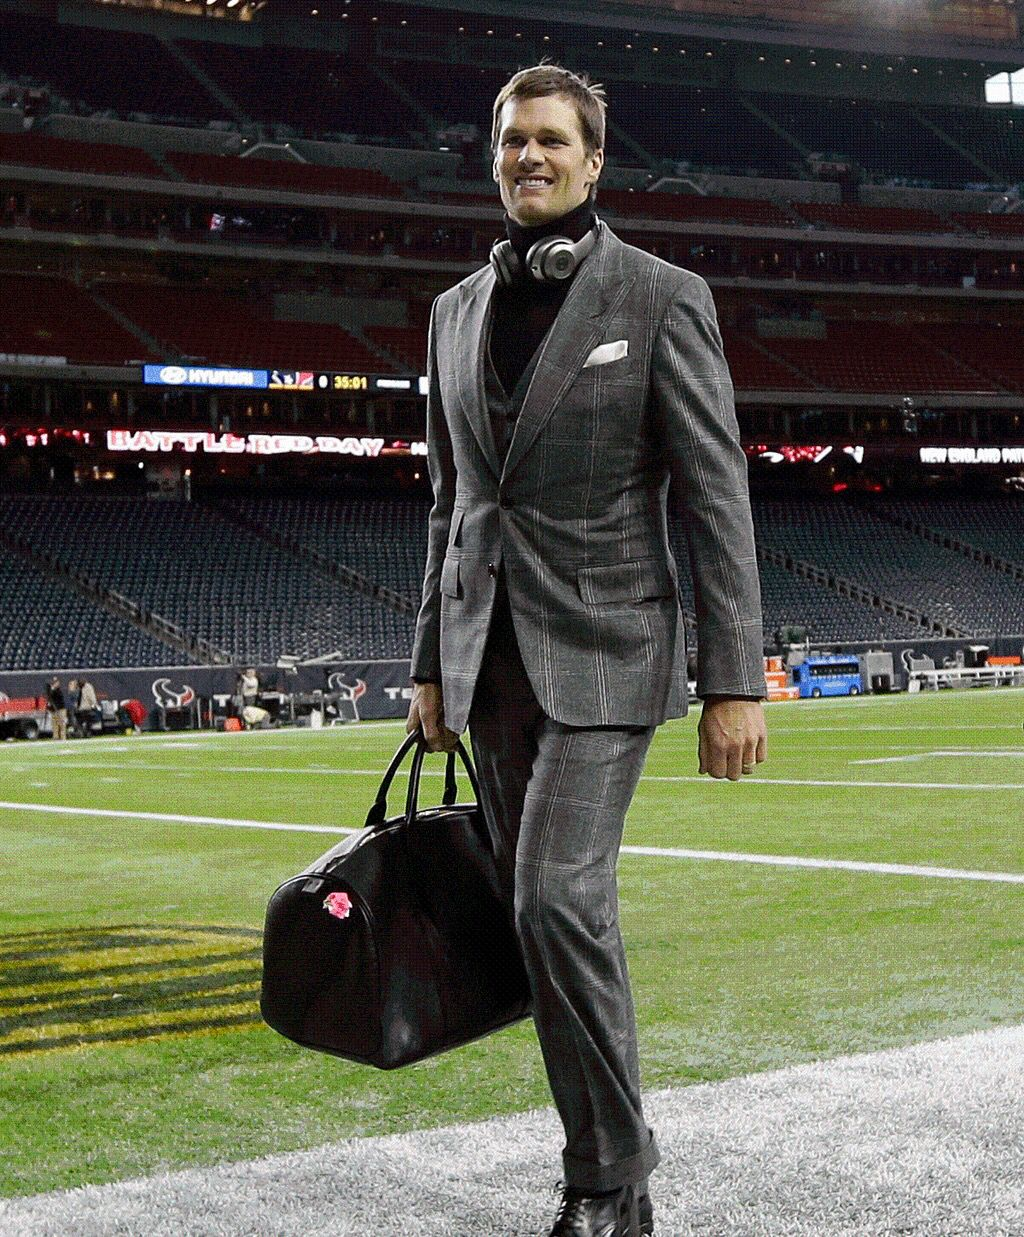 Pin By Tracy On Your Pinterest Likes Tom Brady Team New England Patriots Merchandise Tom Brady